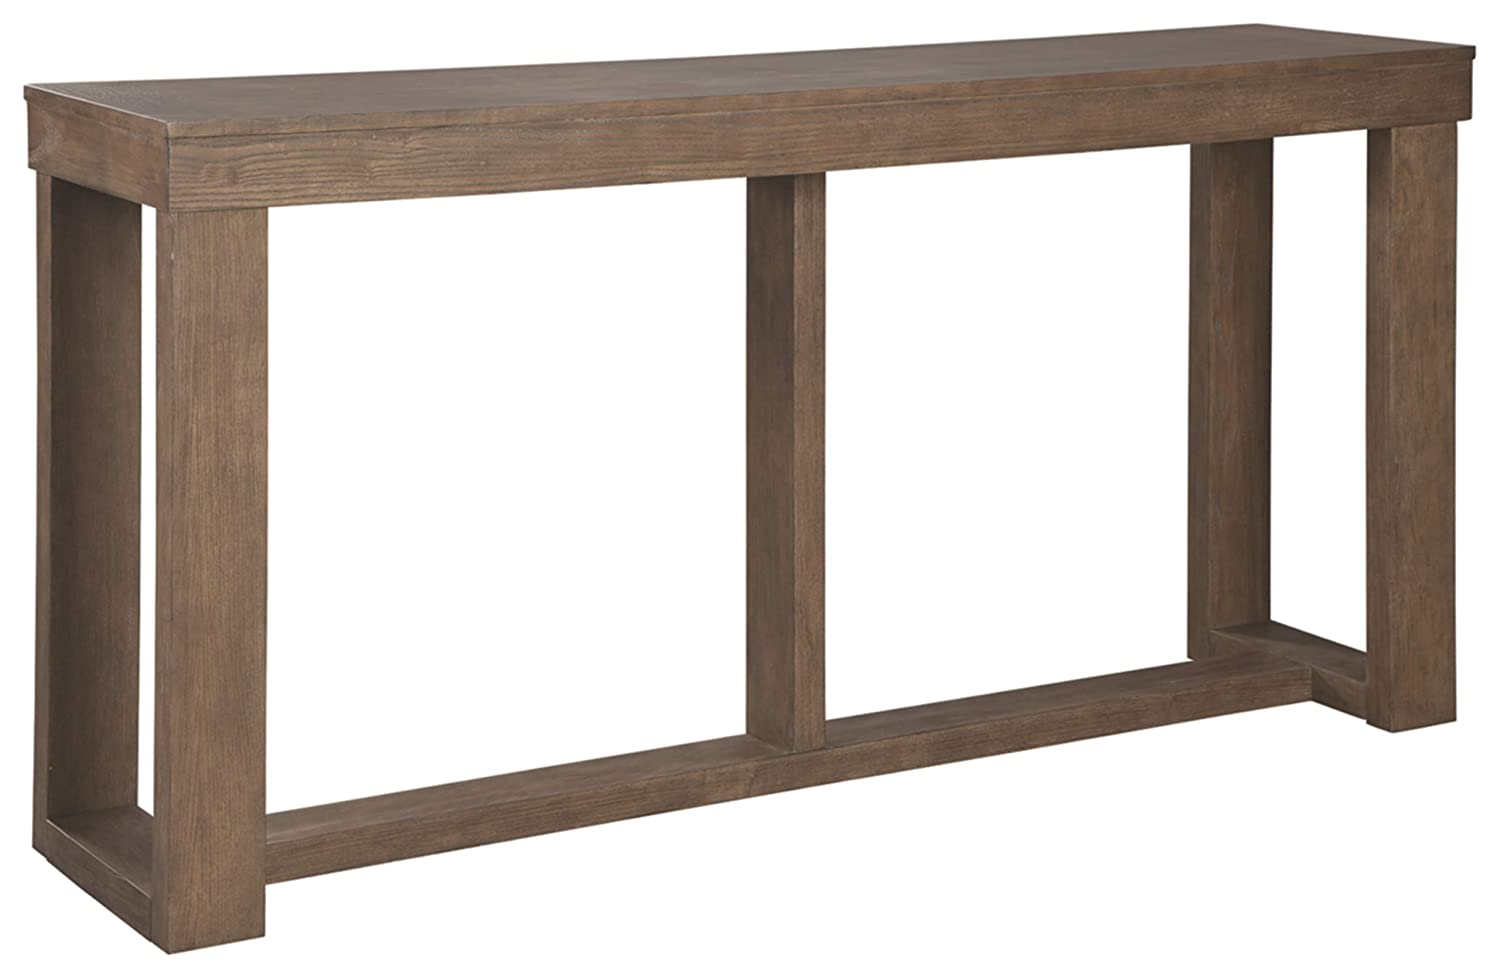 Signature Design by Ashley – Cariton Sofa Table, Grayish Brown Wood